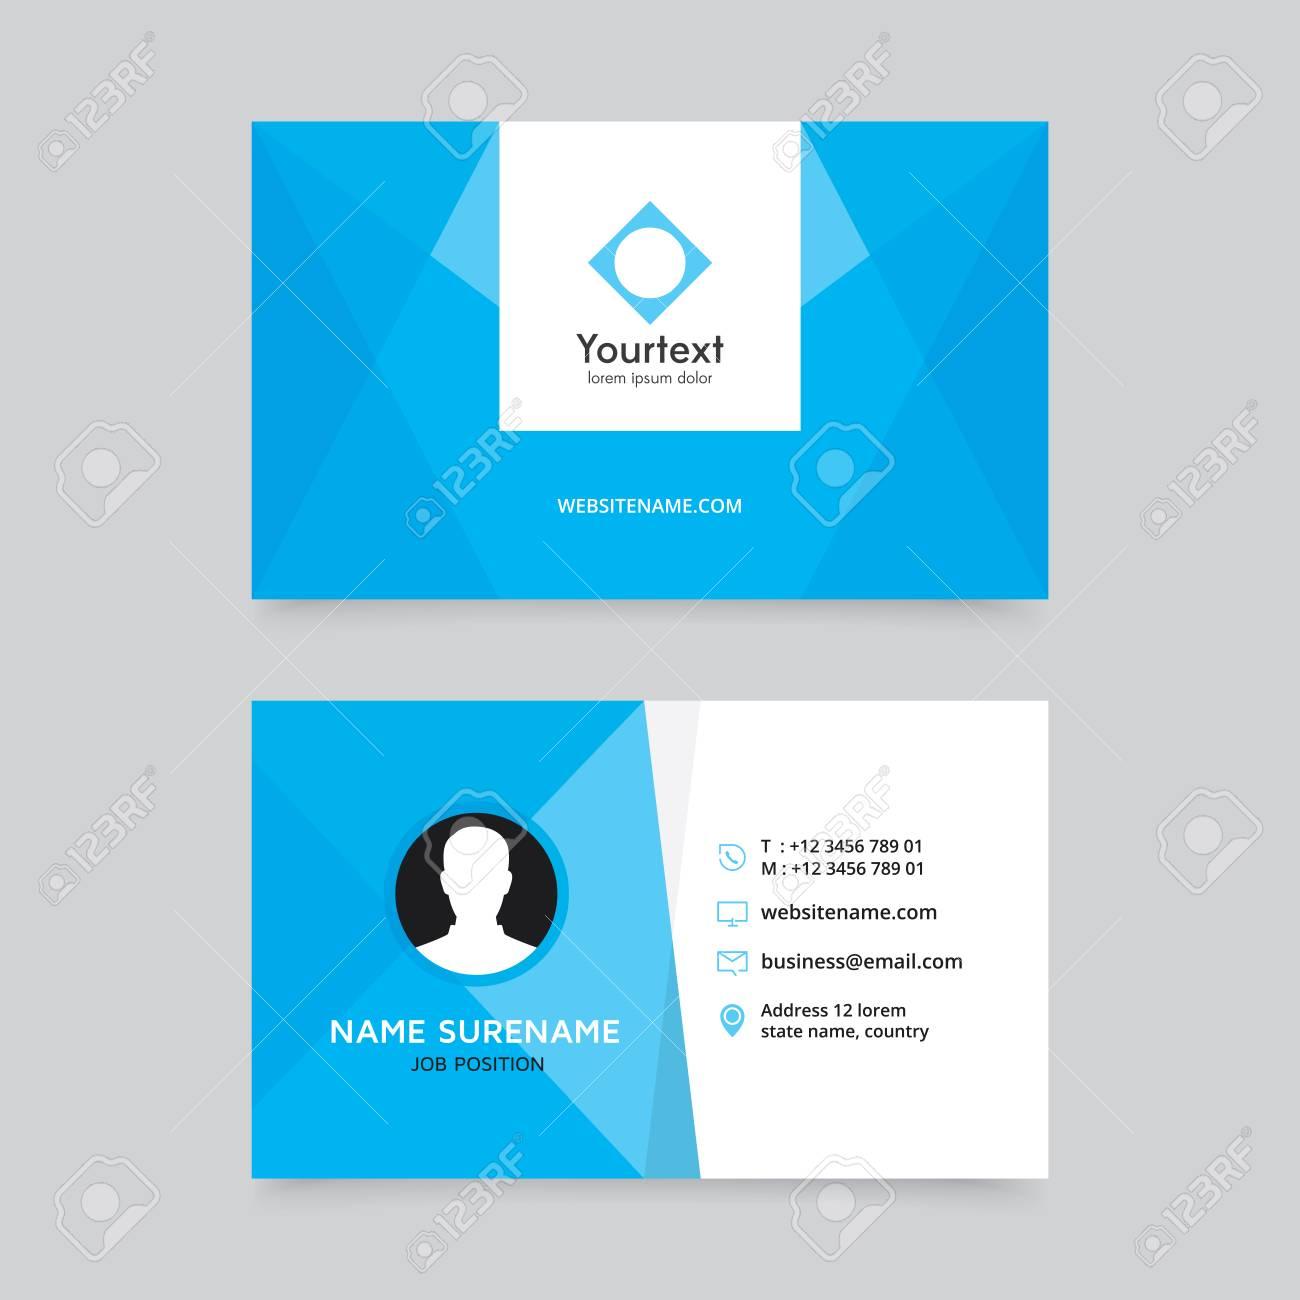 elegant clean blue business card design vector modern creative